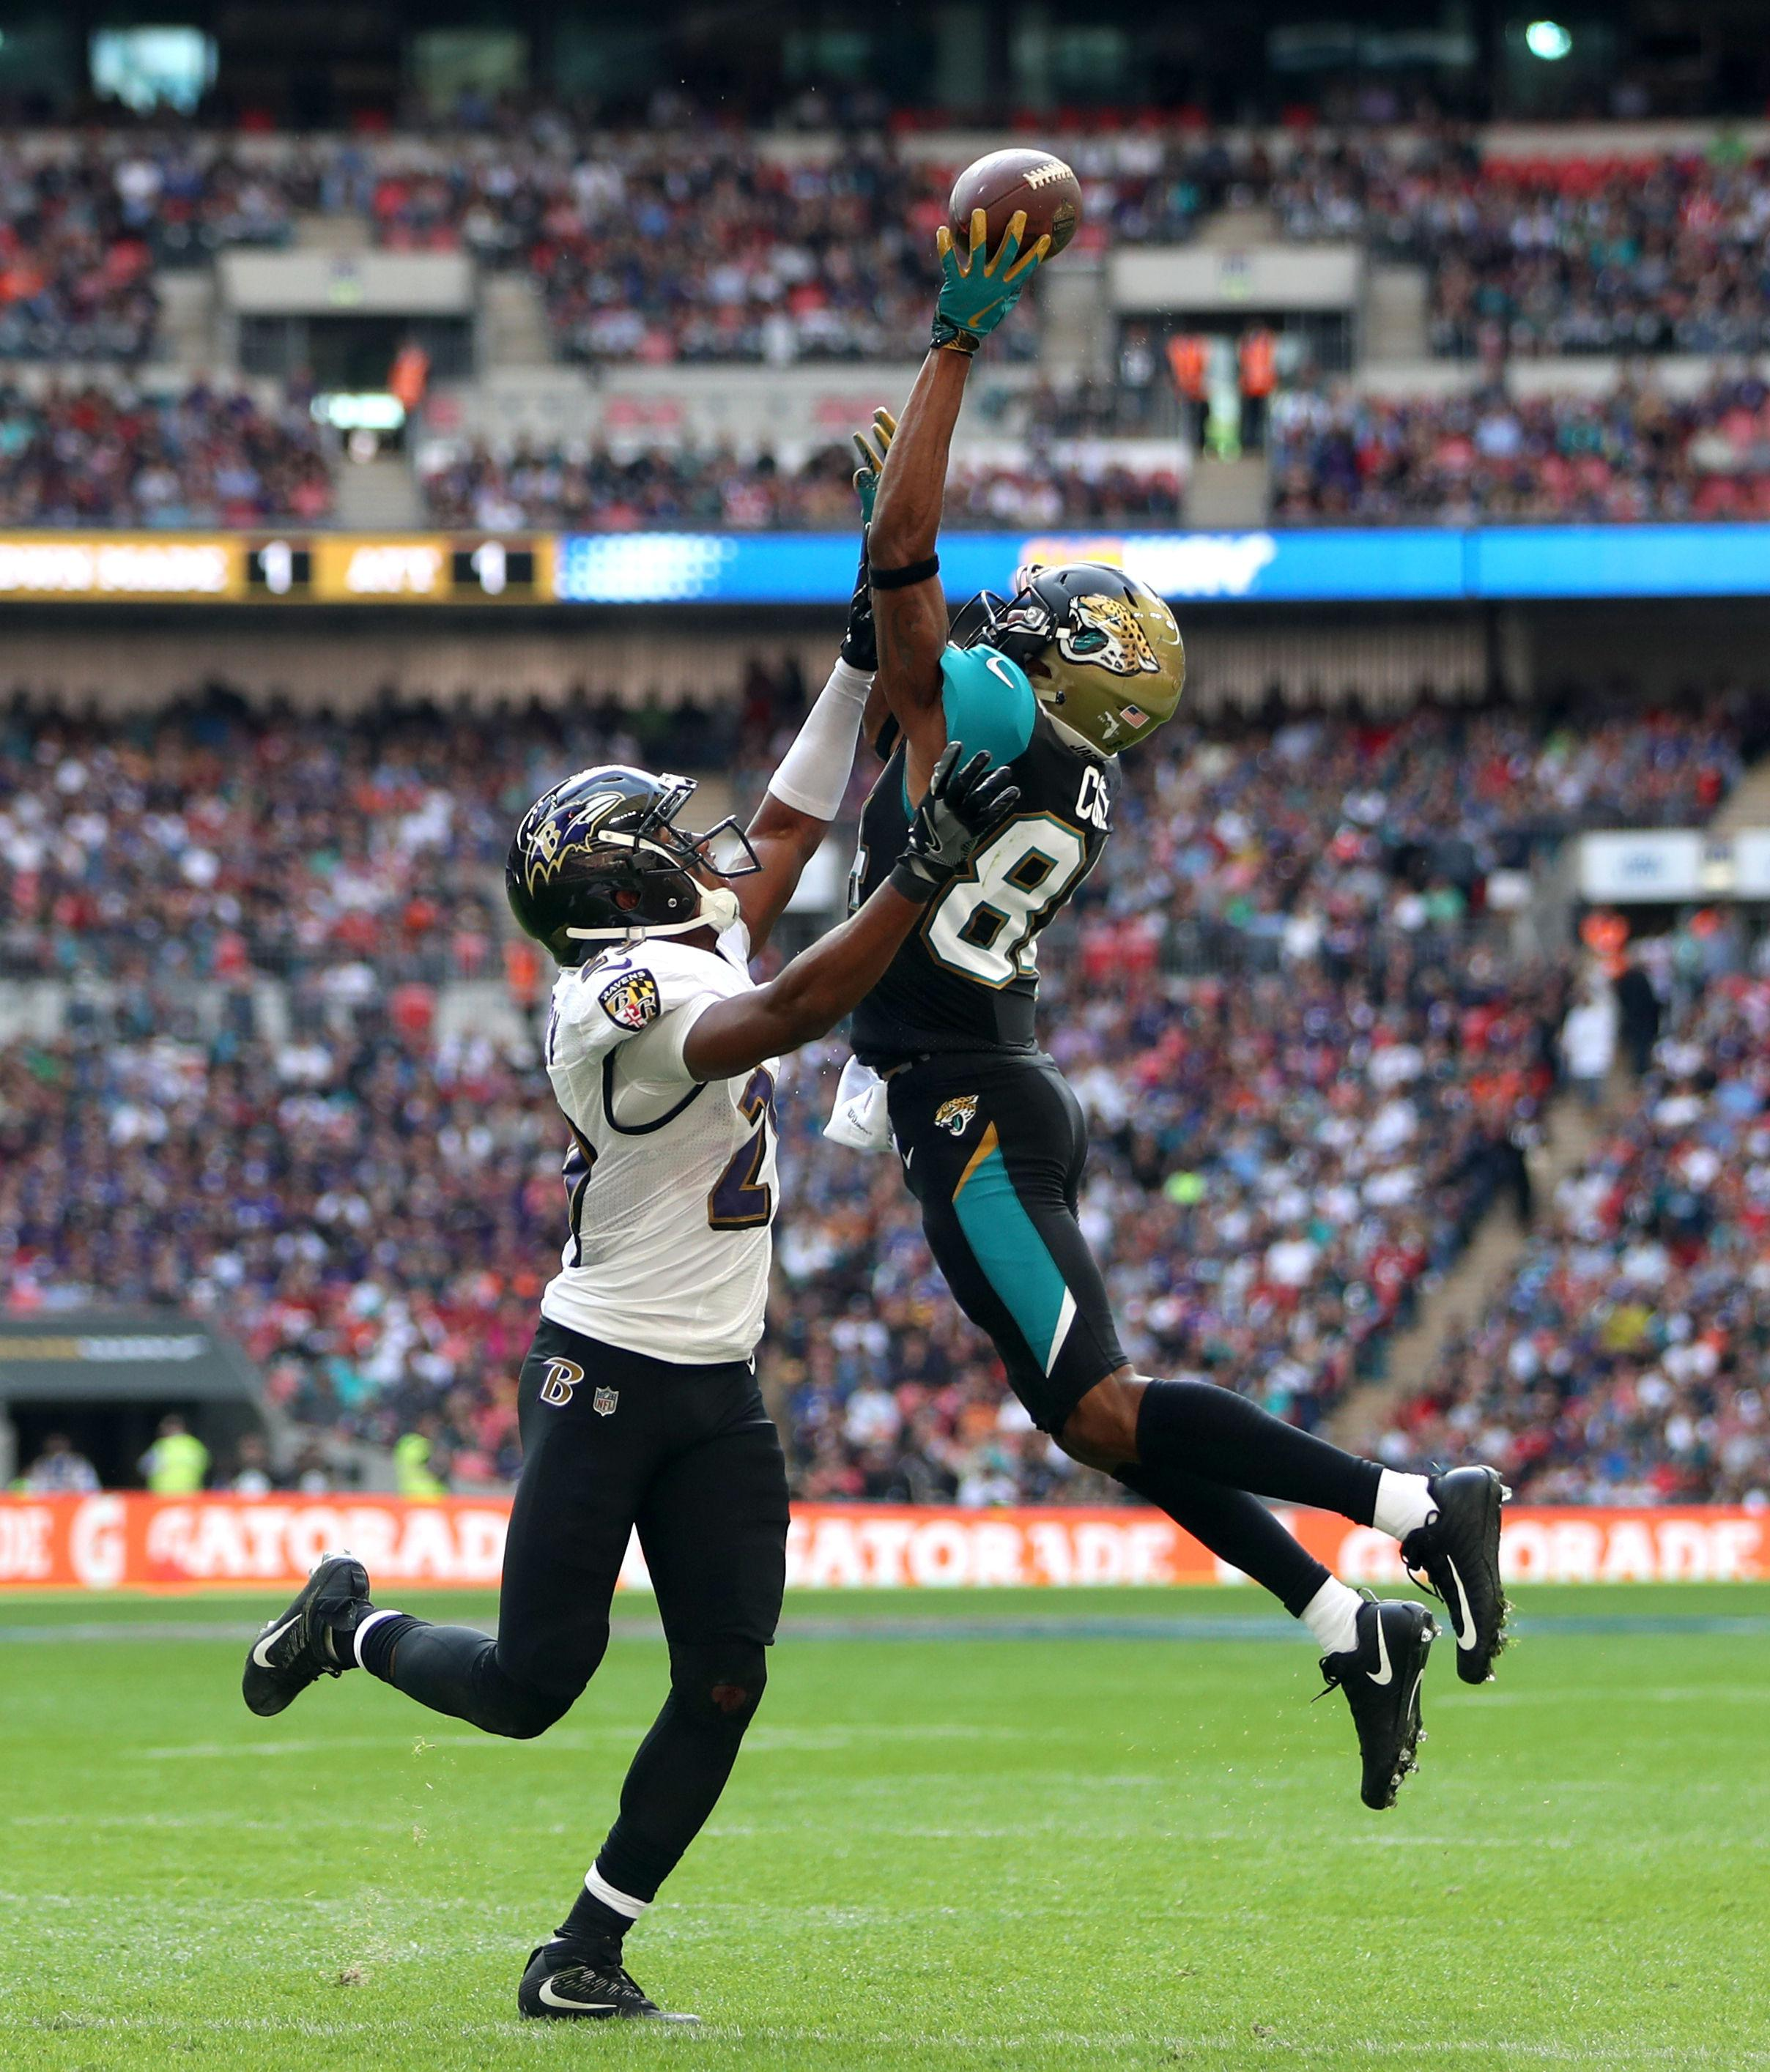 A receiver and a defensive back battle for the ball when it is thrown in the air